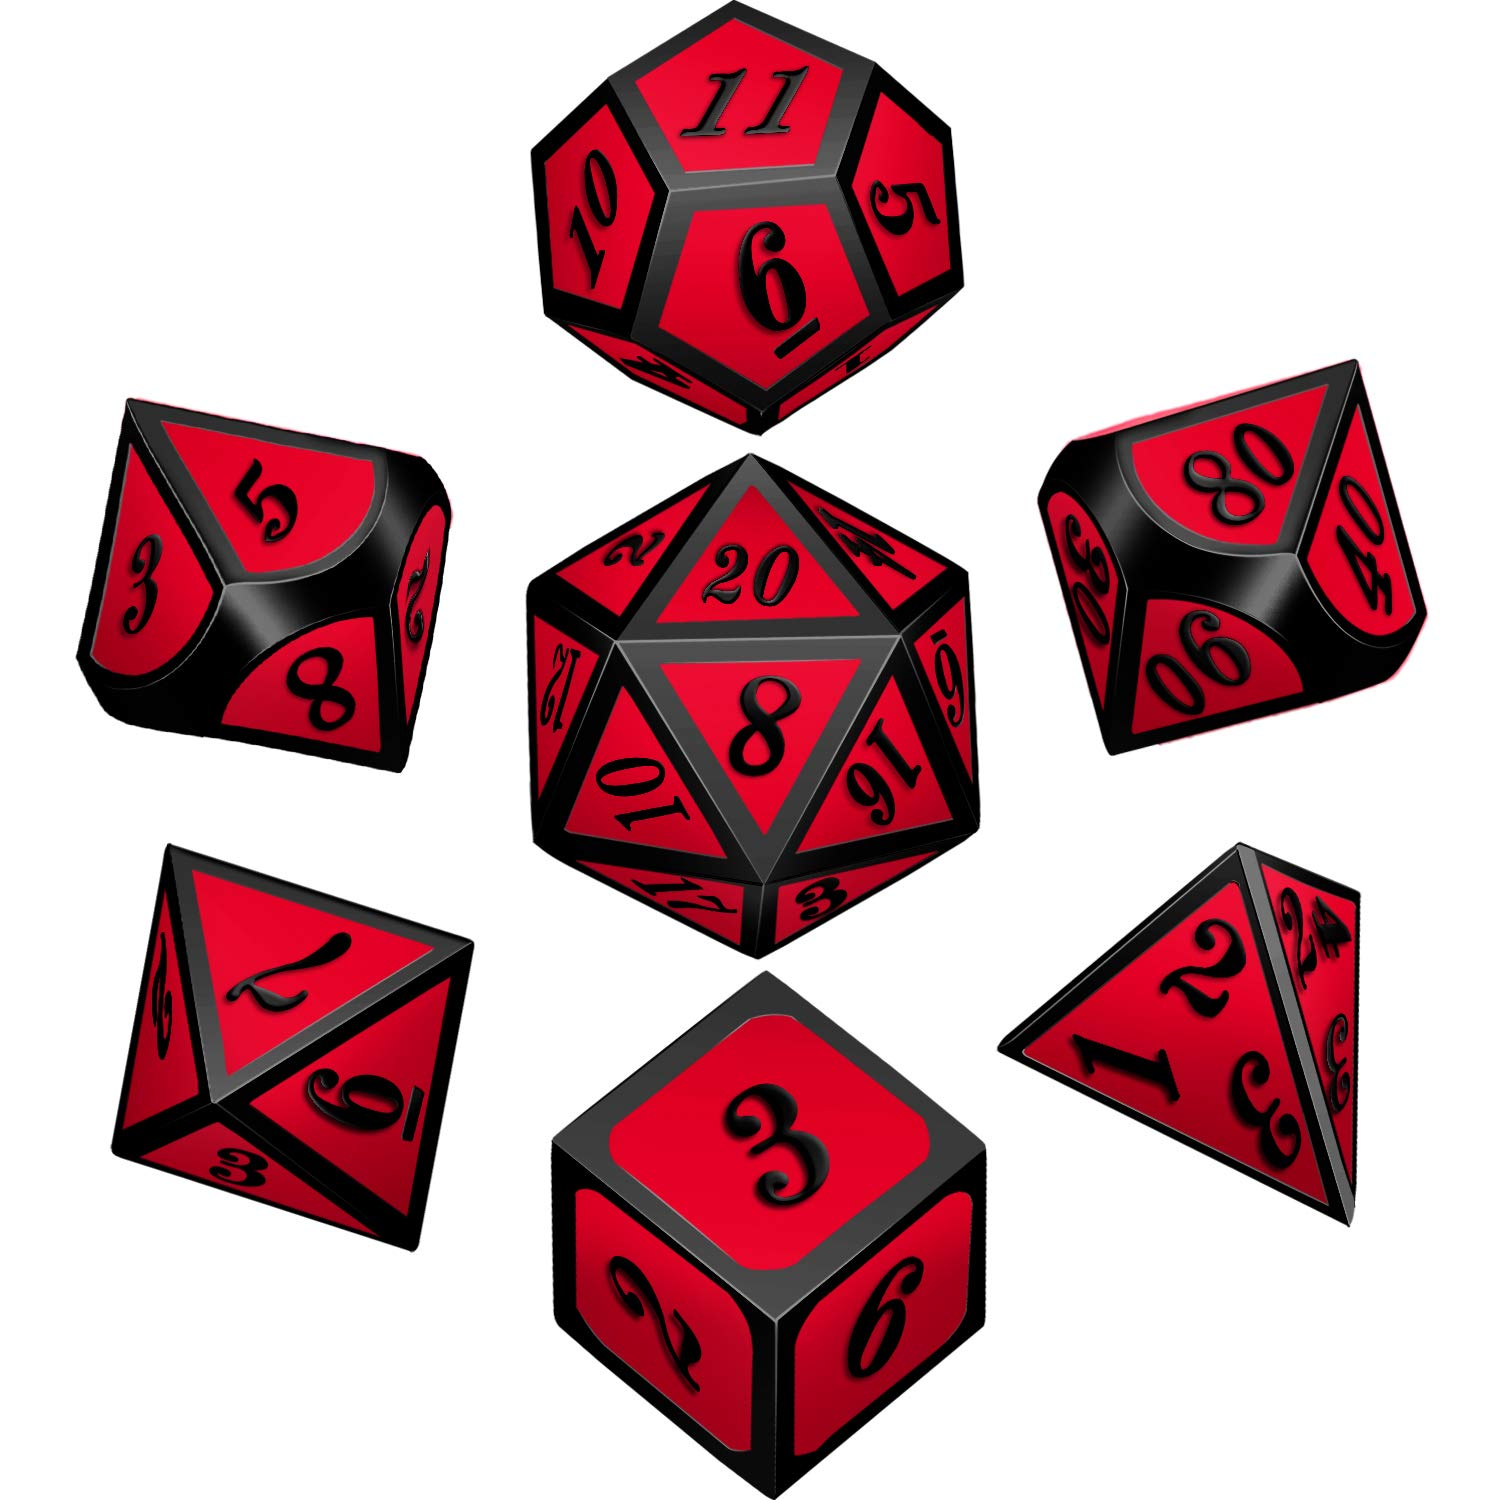 Bememo Polyhedral Metal Dices Set Zinc Alloy with Enamel Solid Metal for DND Game, Tabletop RPG, Dungeons and Dragons, Math Teaching, 7 Pieces Dice Set with Black Velvet Bag (Black Nickel Red) by Bememo